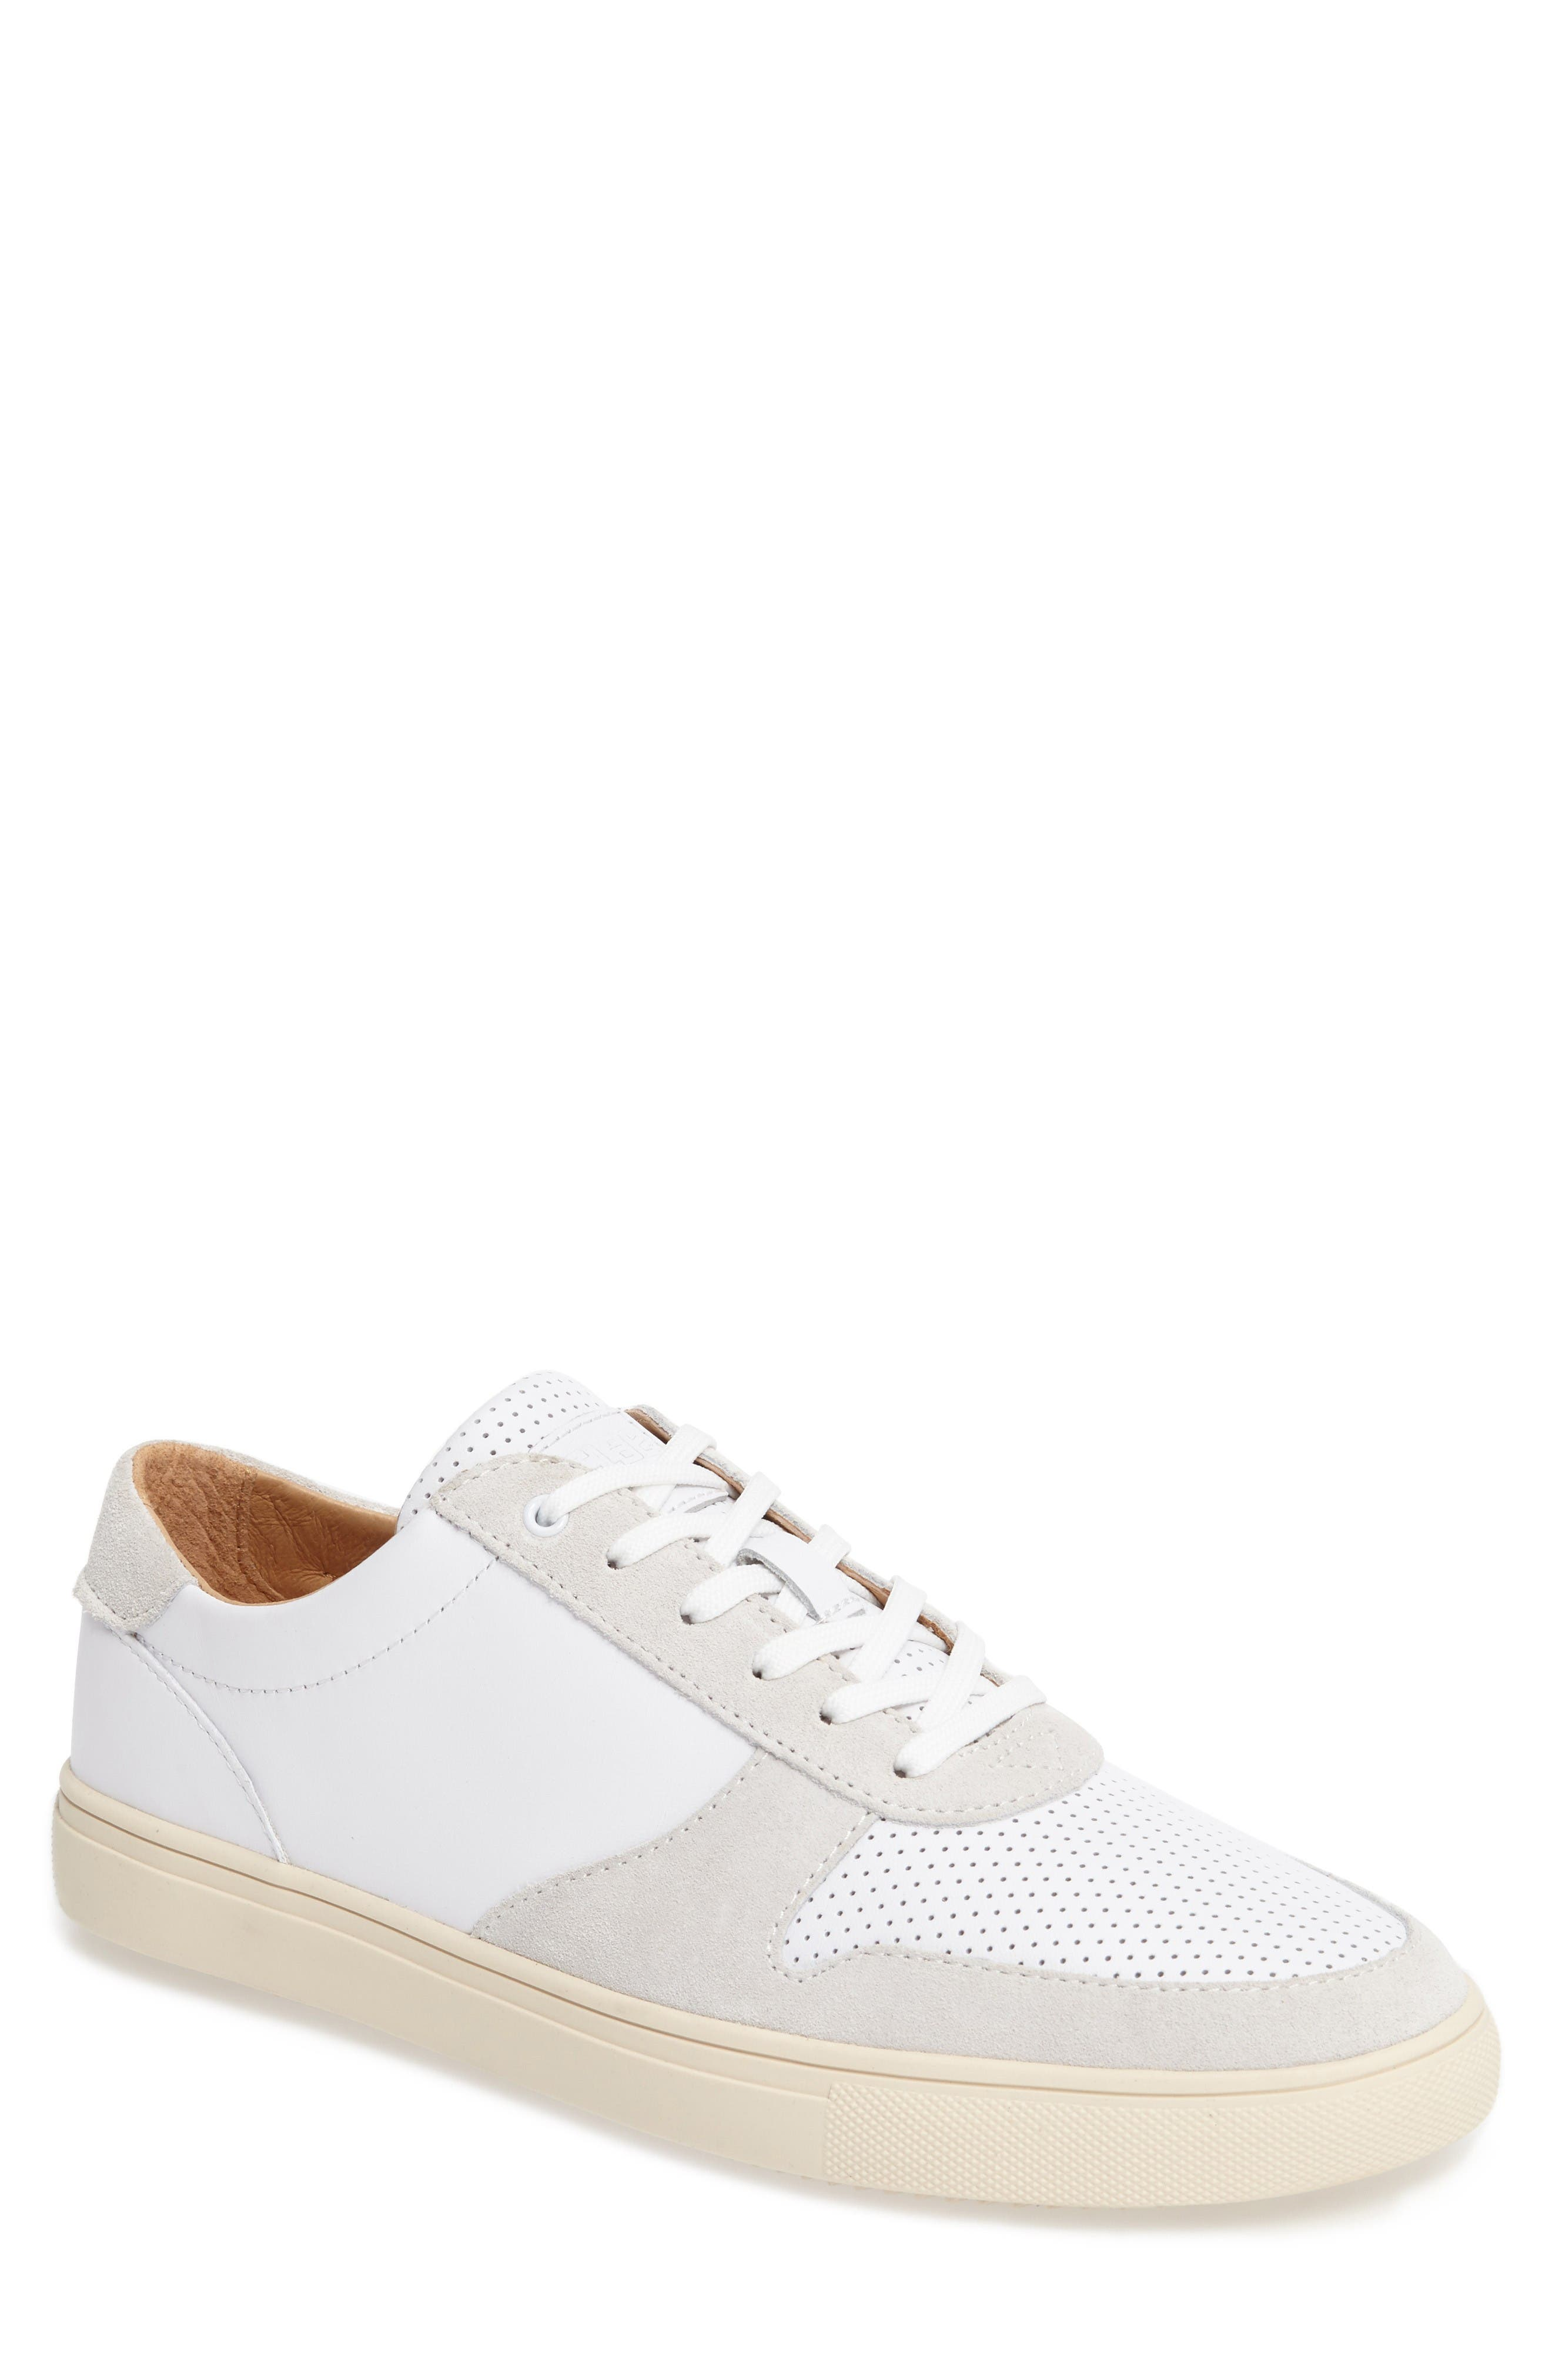 'Gregory' Sneaker,                             Main thumbnail 1, color,                             White Leather